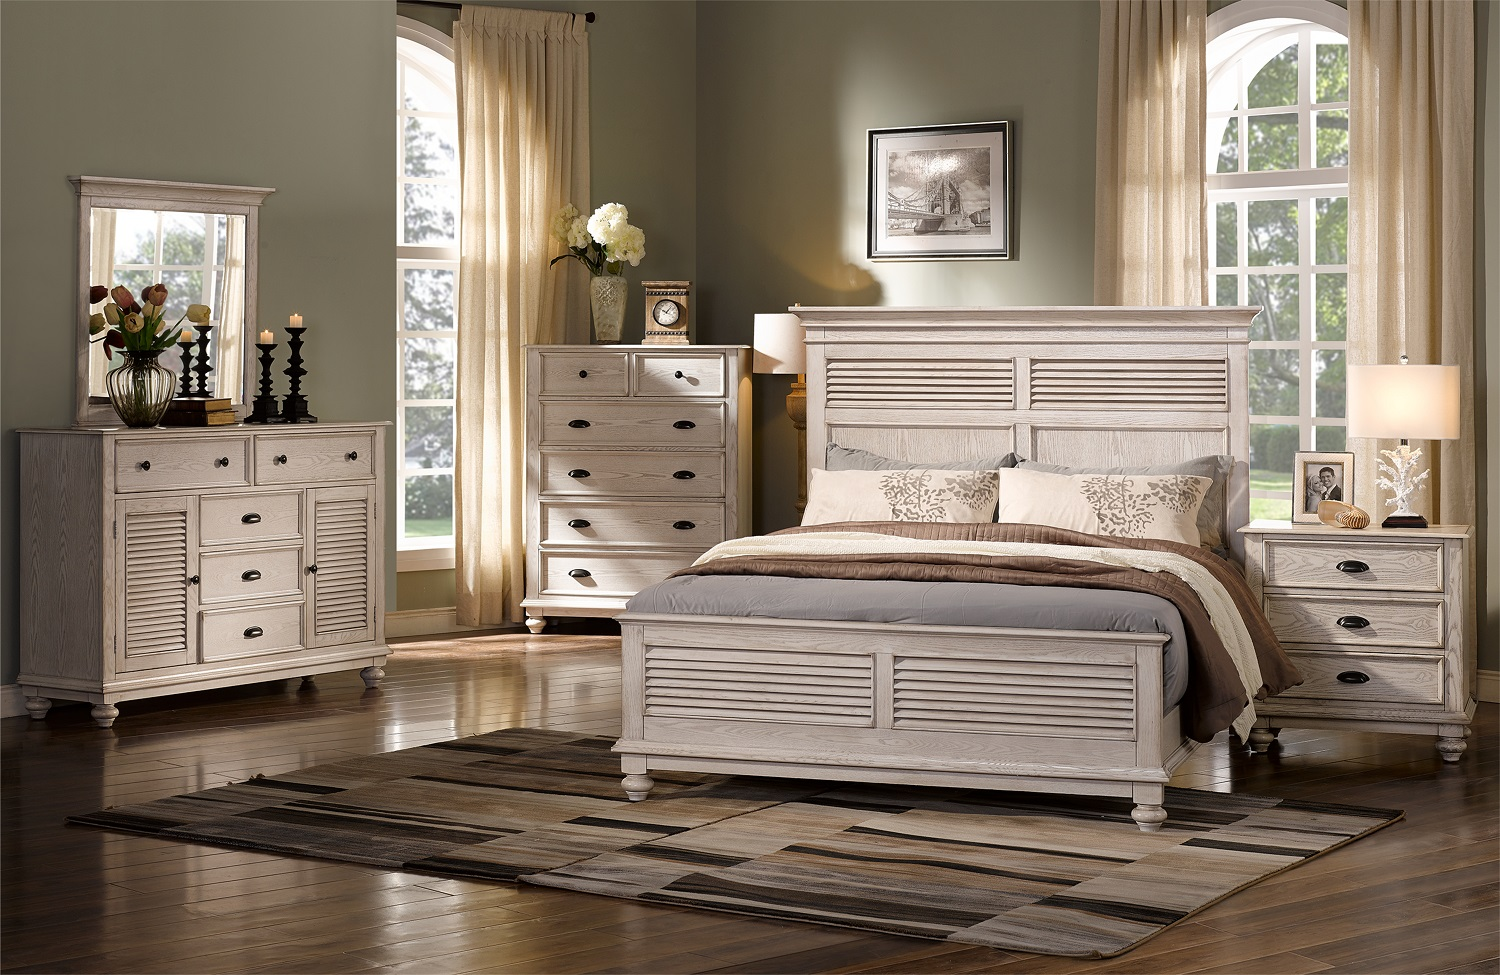 Lakeport bedroom Collection Available in queen & king